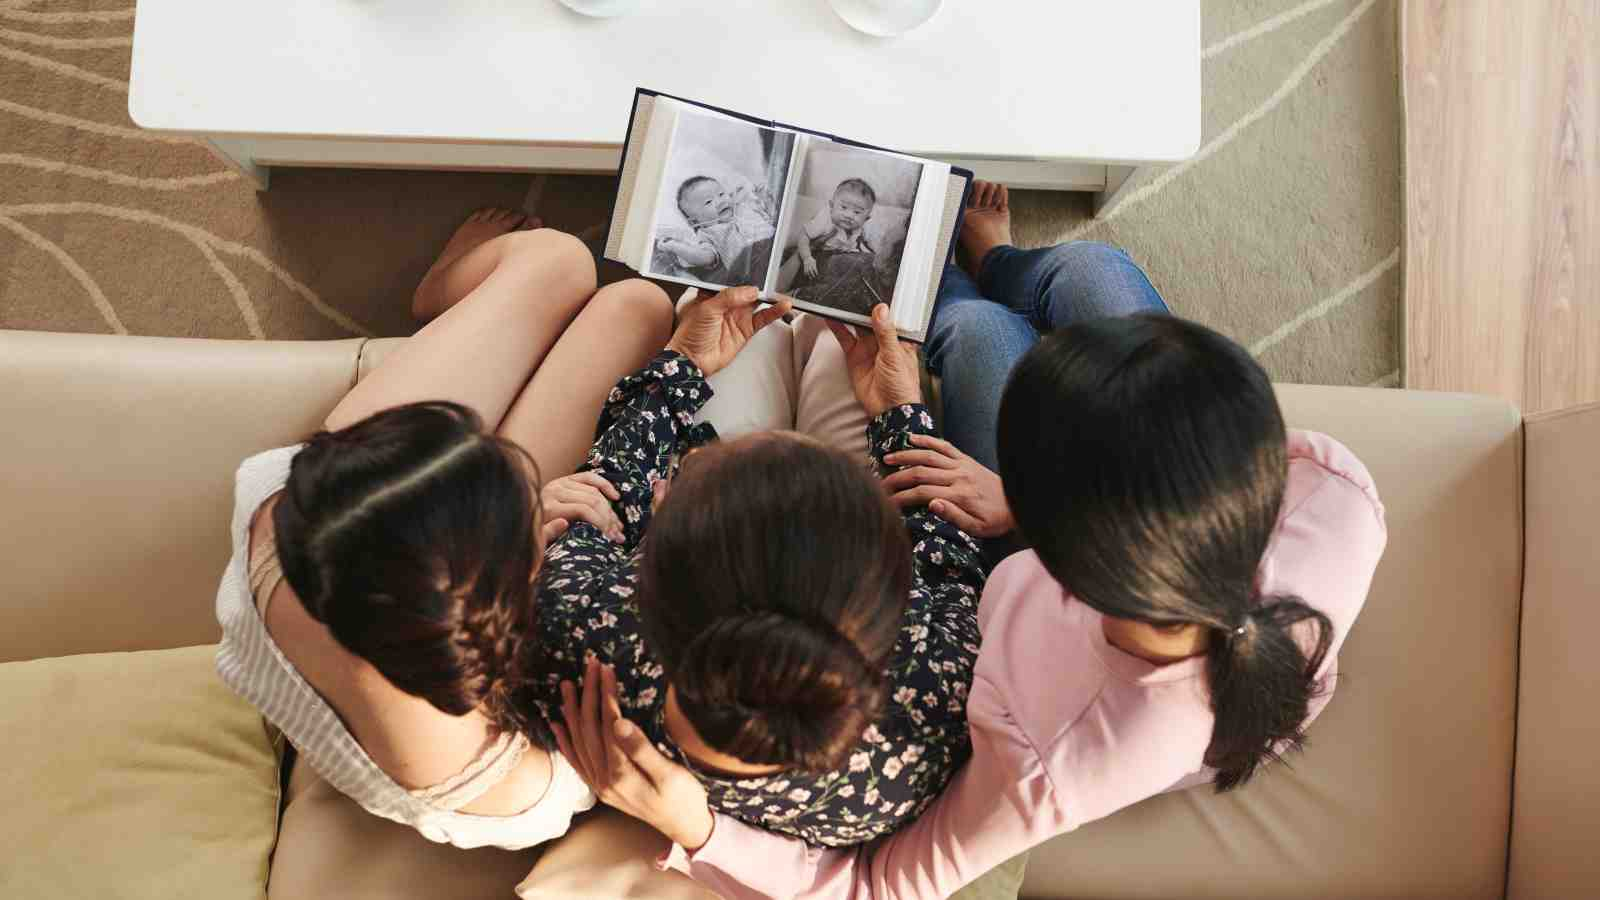 photo album being viewed by three women of different ages